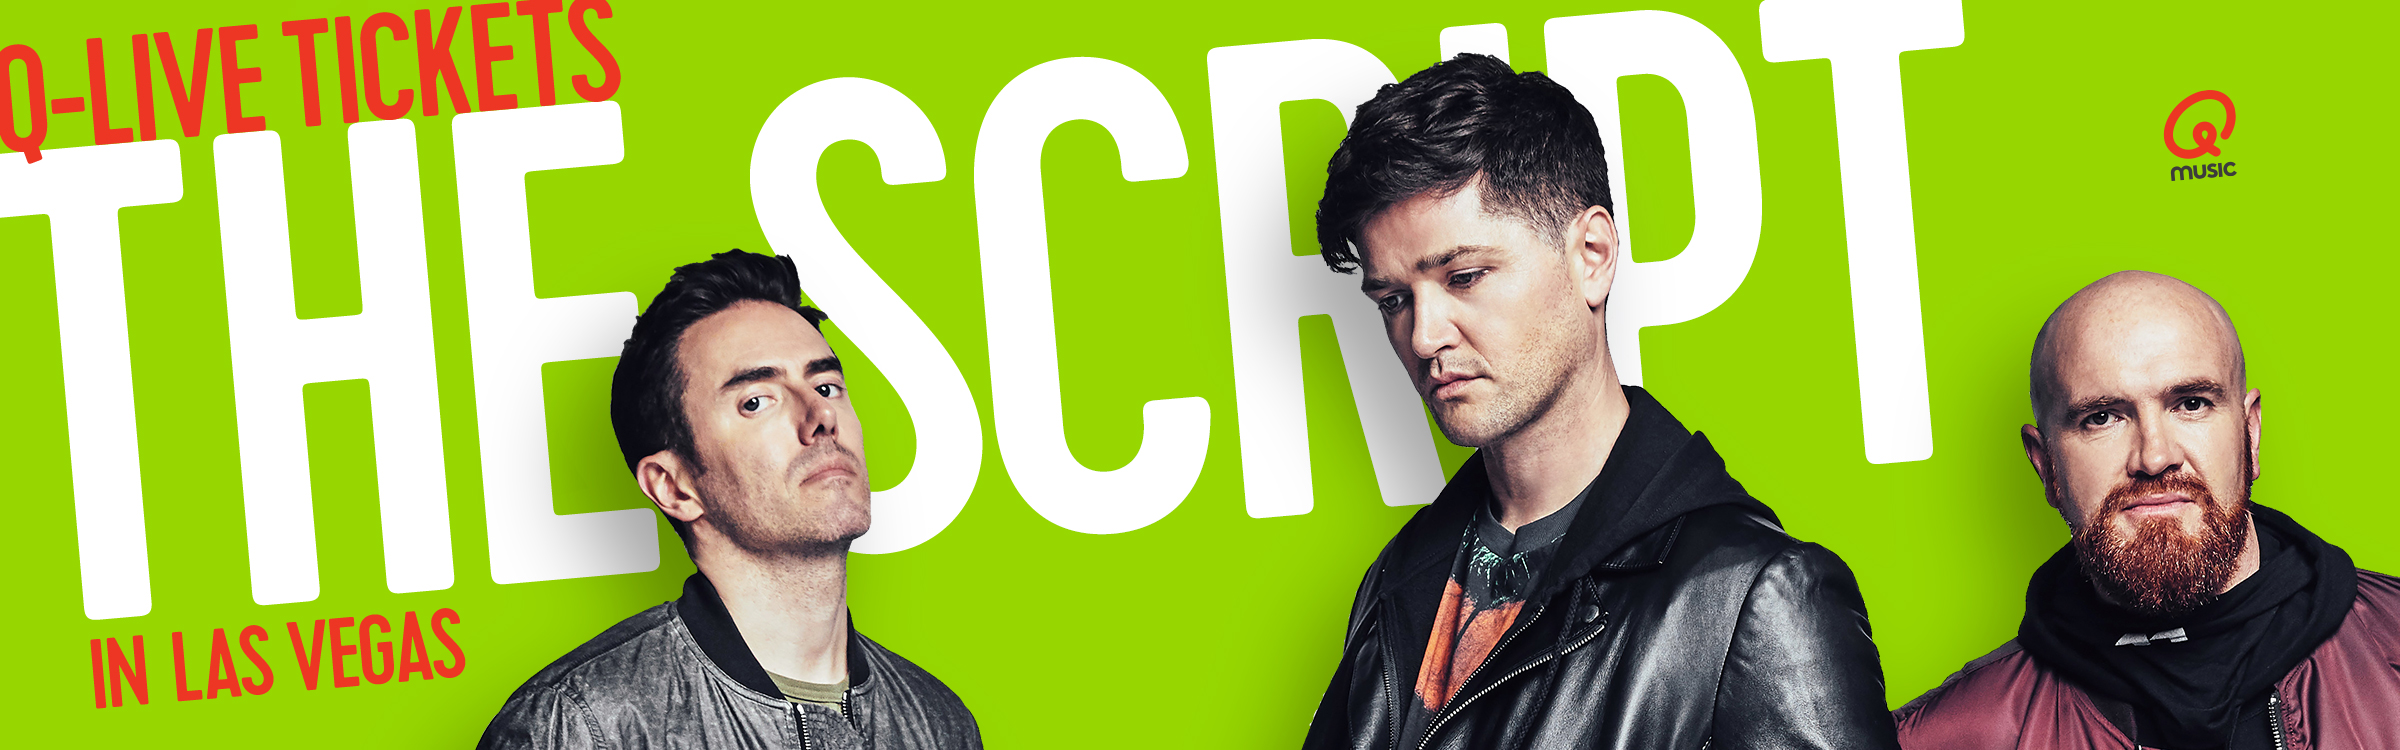 Qmusic actionheader thescript